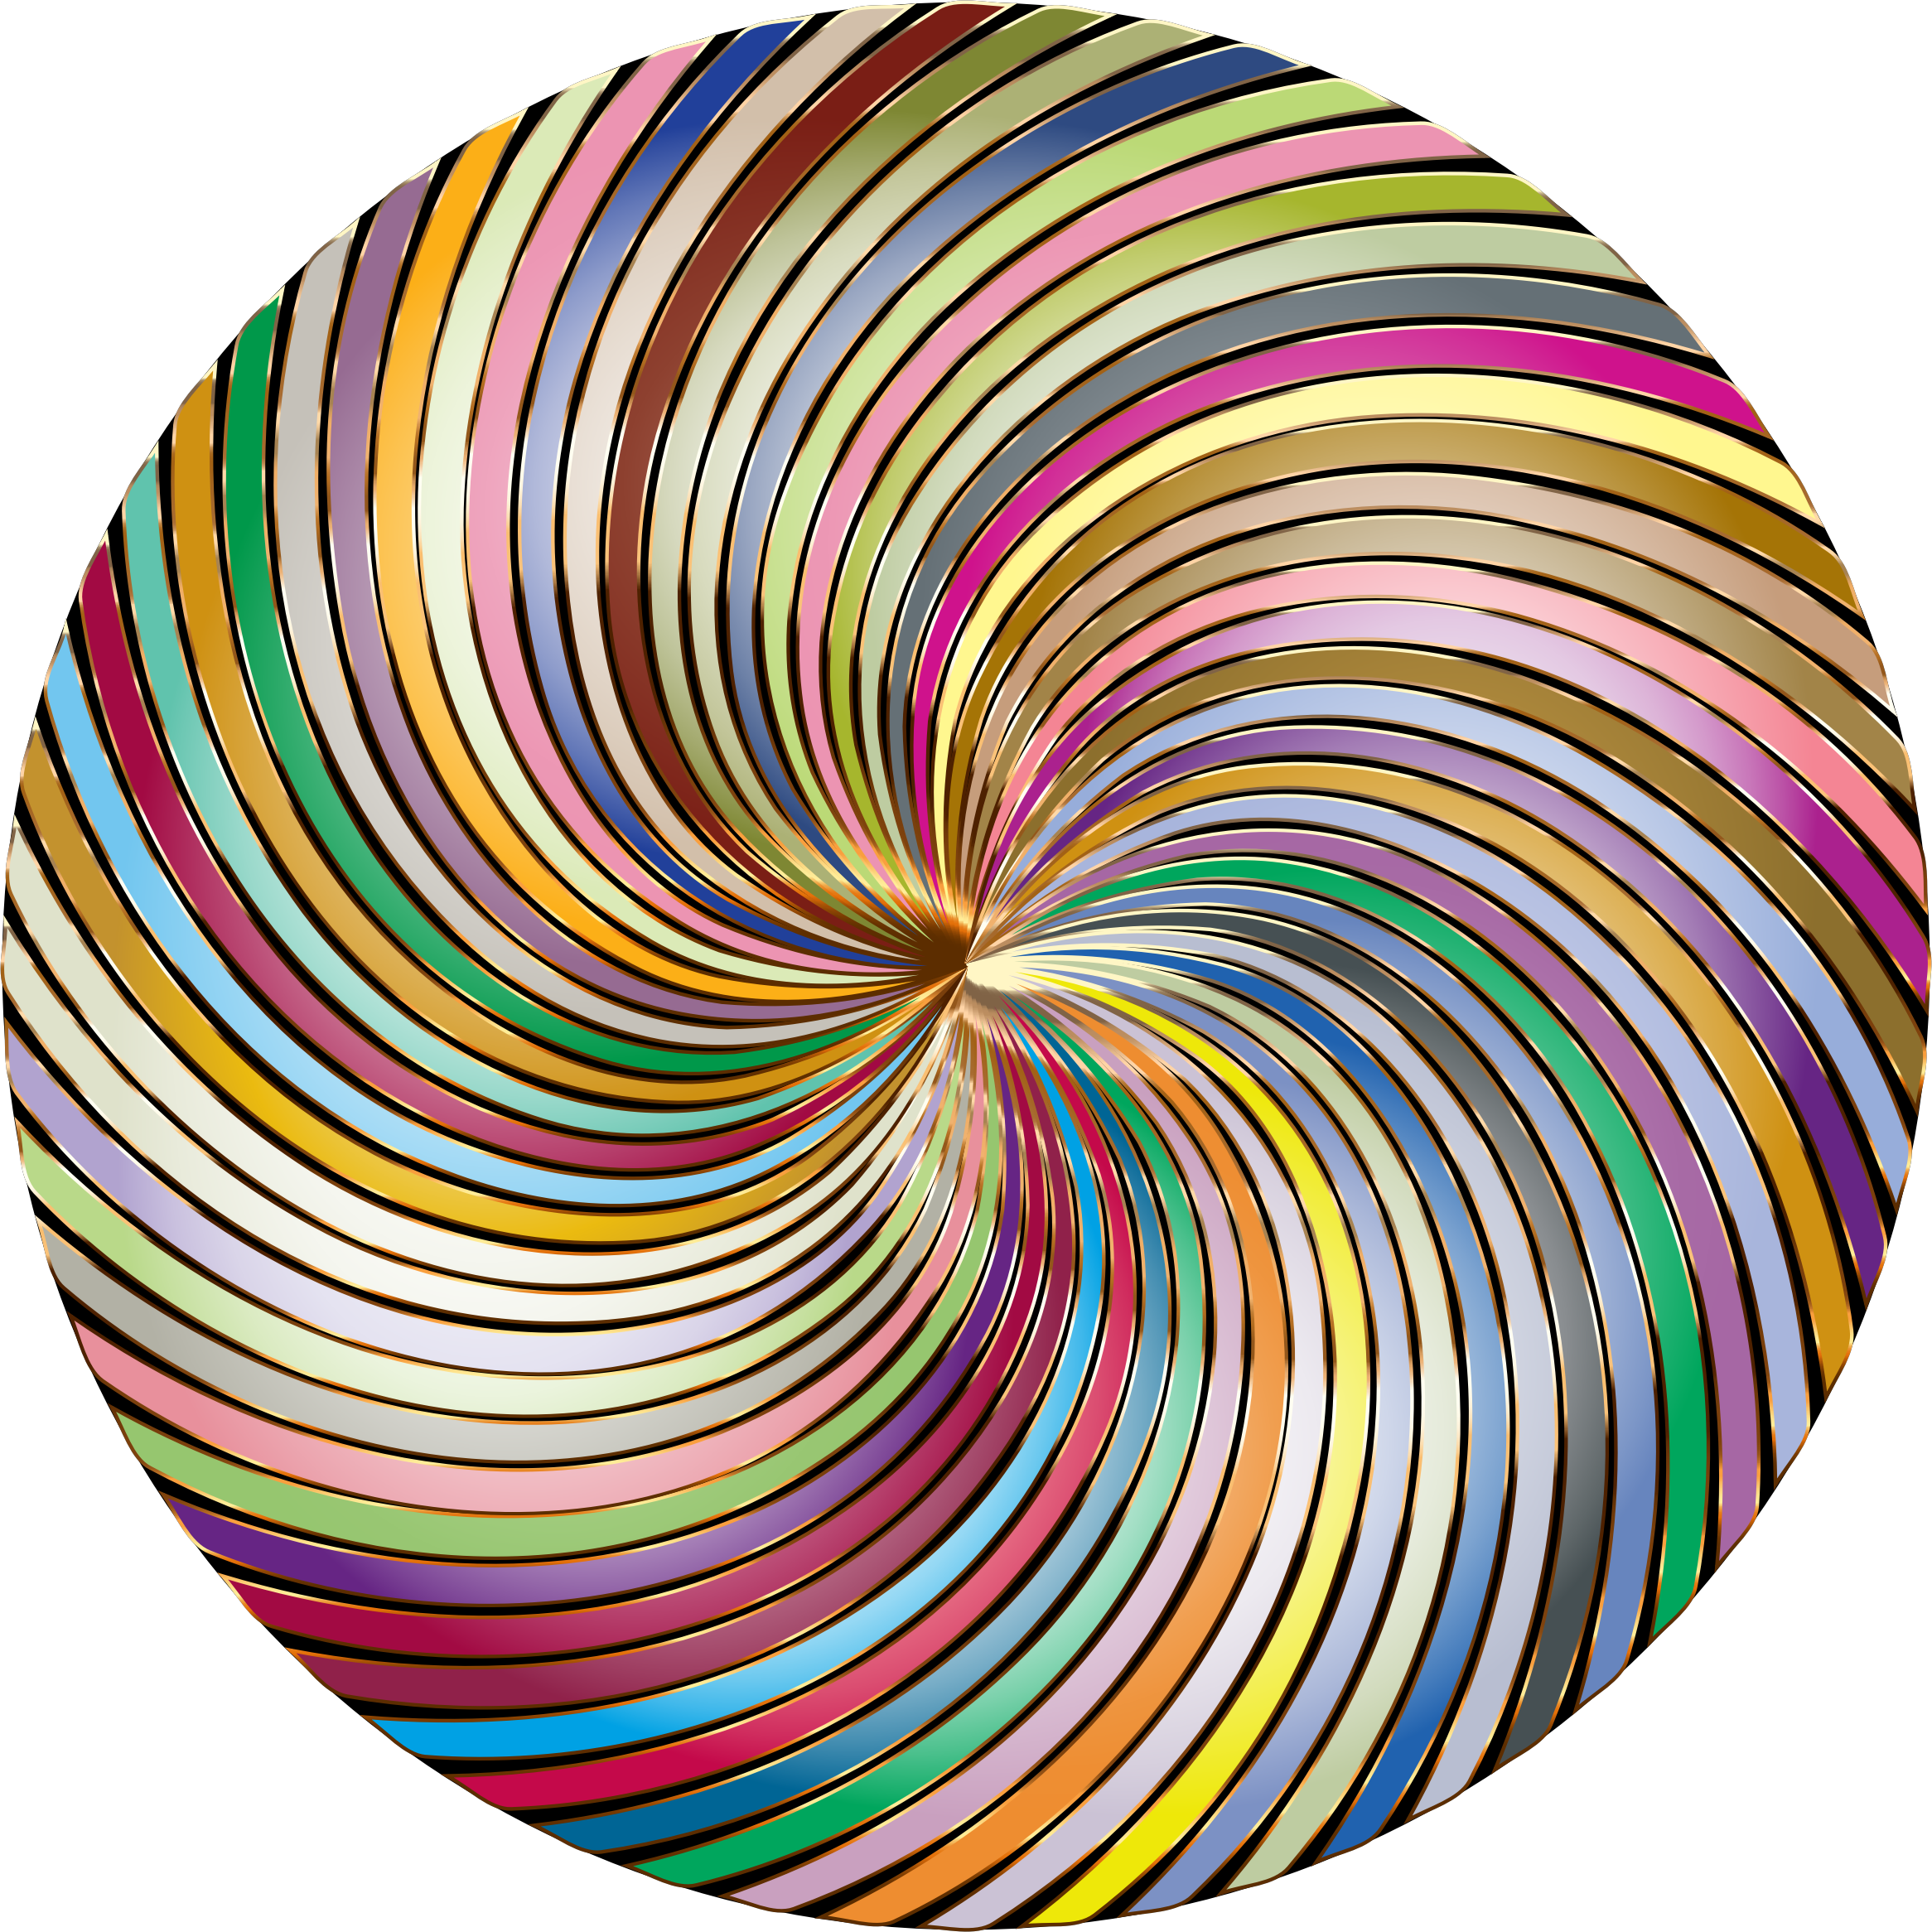 Chromatic Twirly Swirly Thing 2 by GDJ